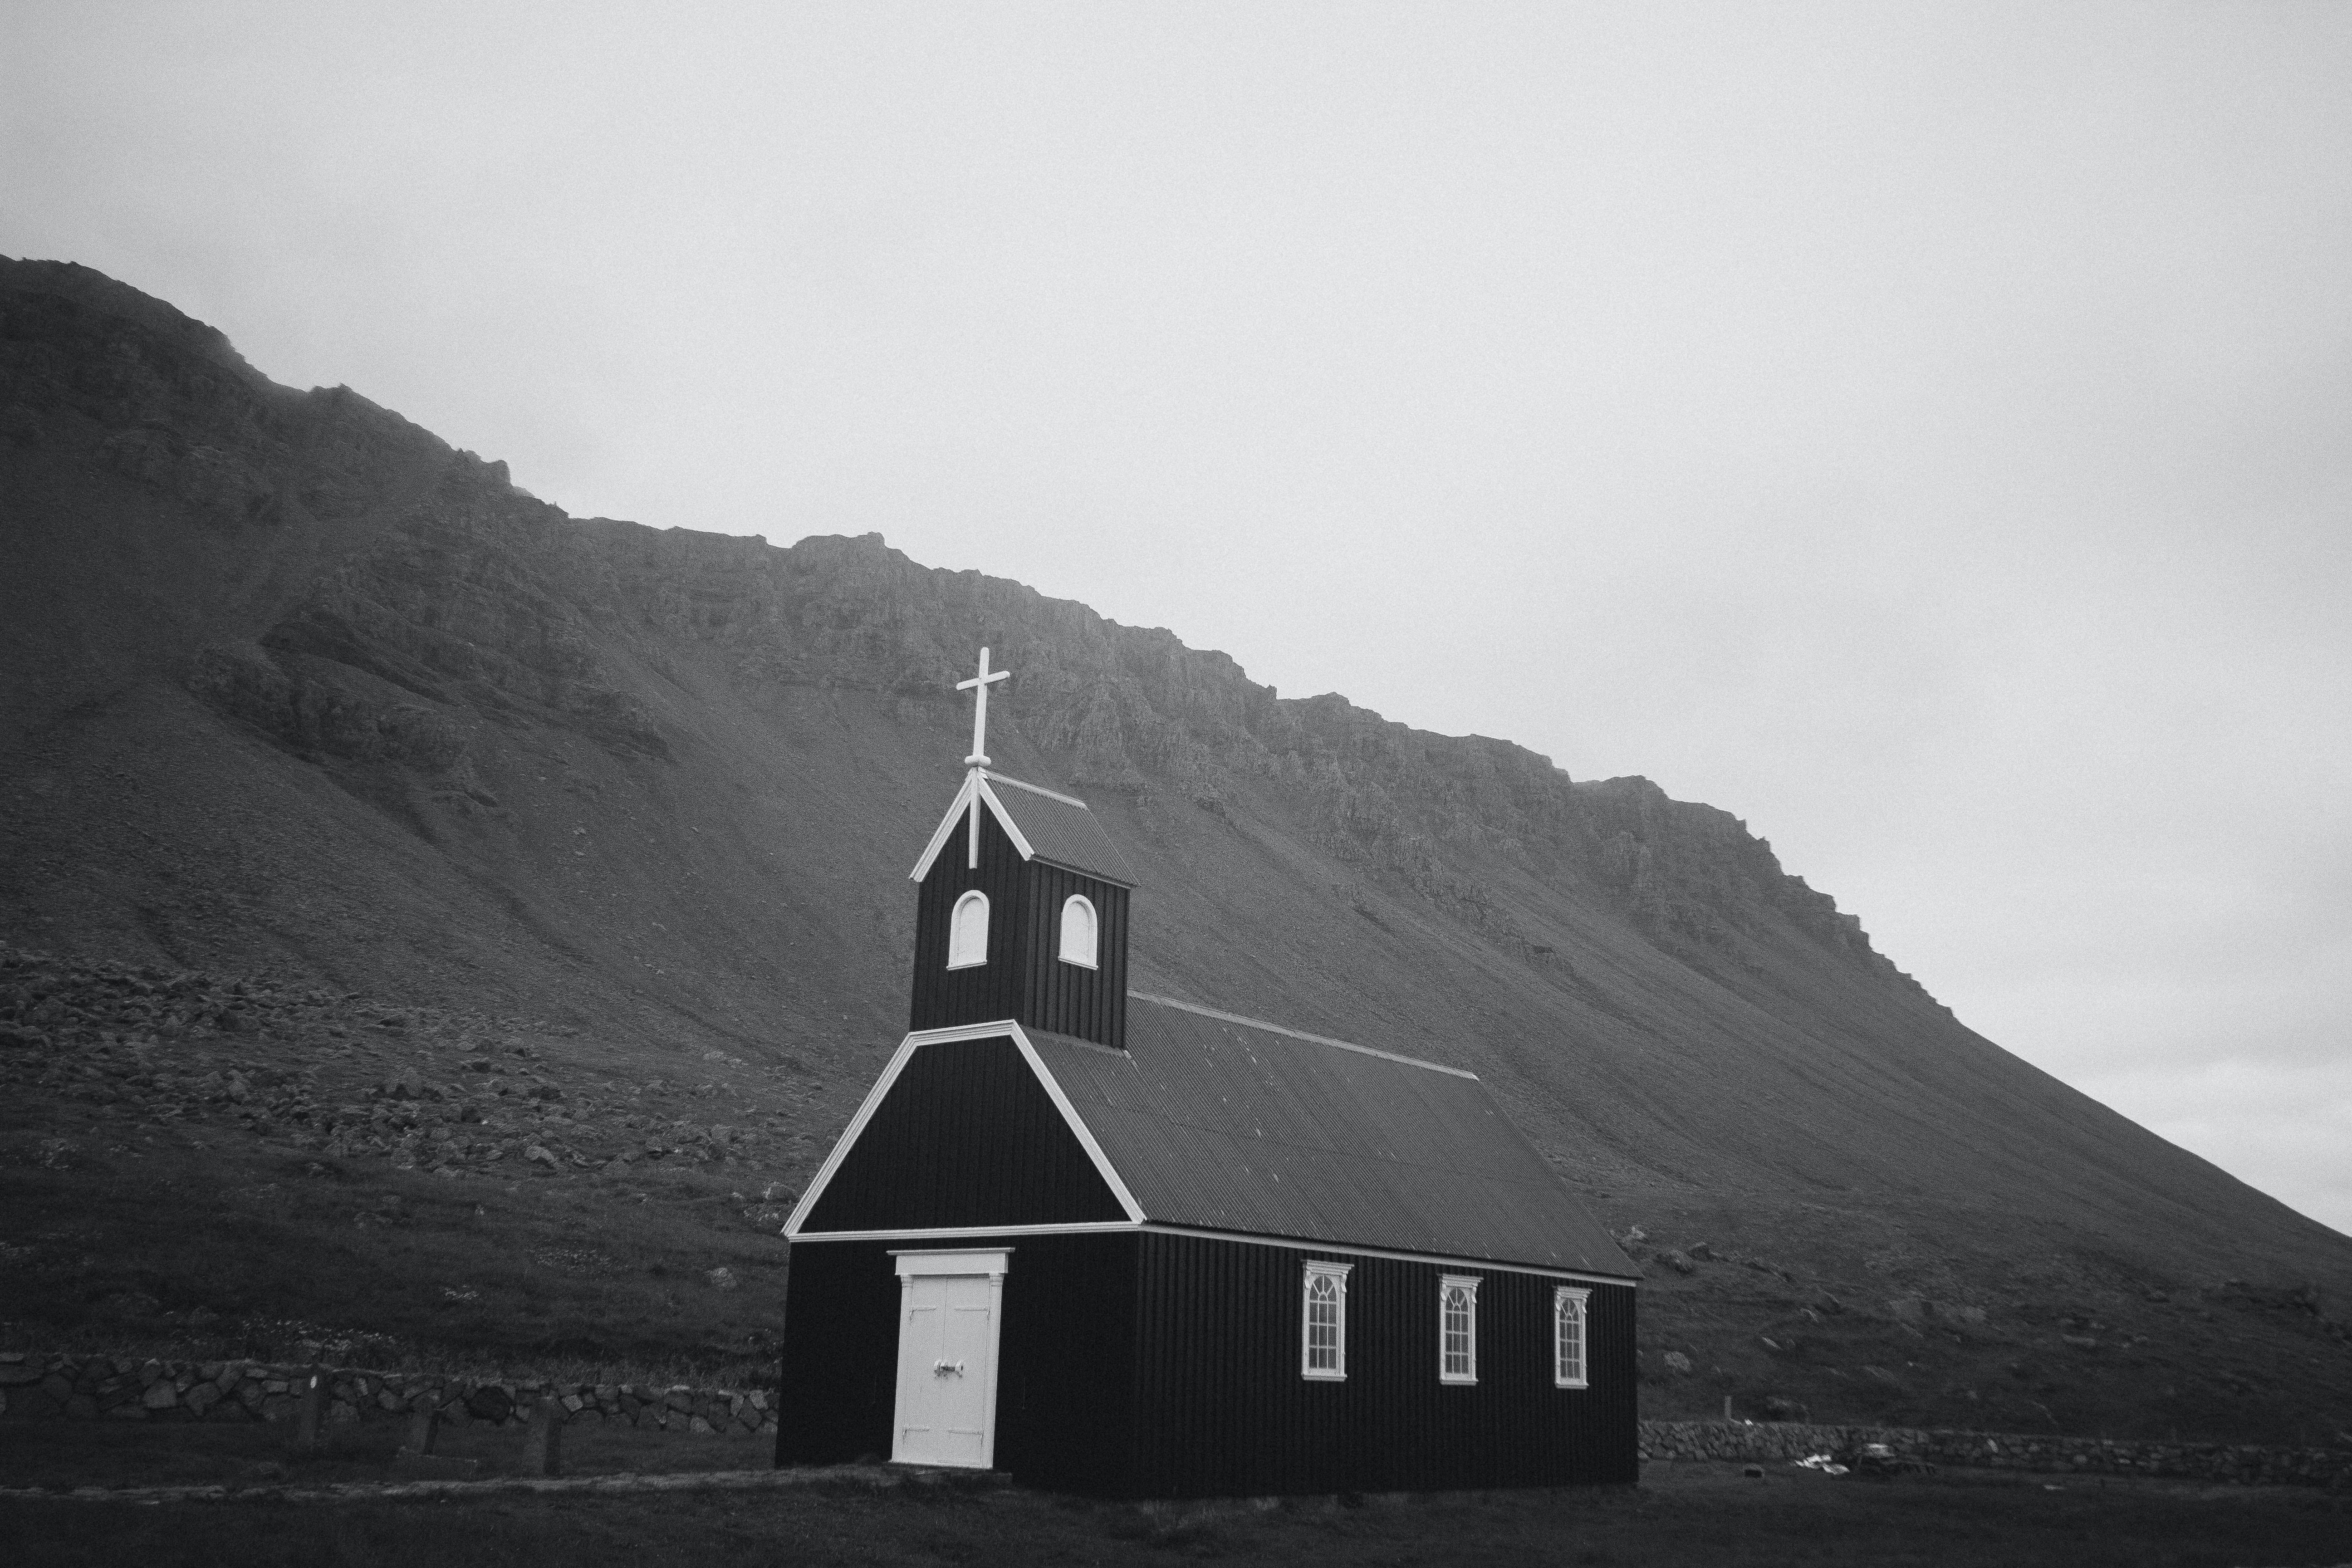 cathedral at bottom of mountain